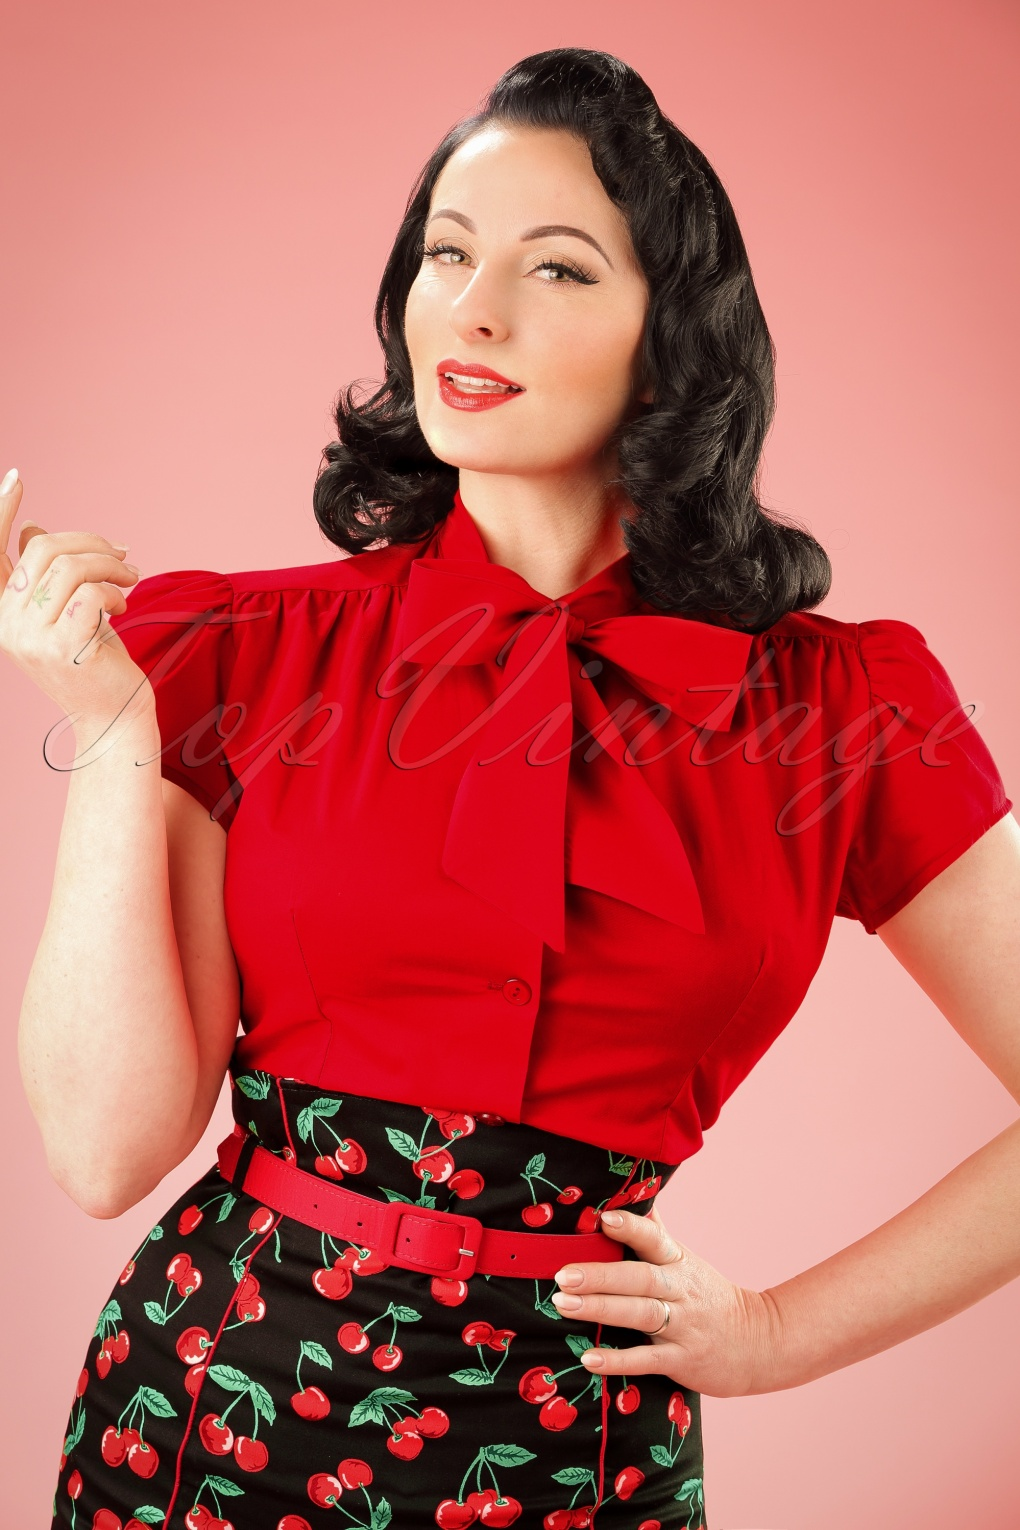 Vintage & Retro Shirts, Halter Tops, Blouses 40s Estelle Blouse in Lipstick Red £33.90 AT vintagedancer.com